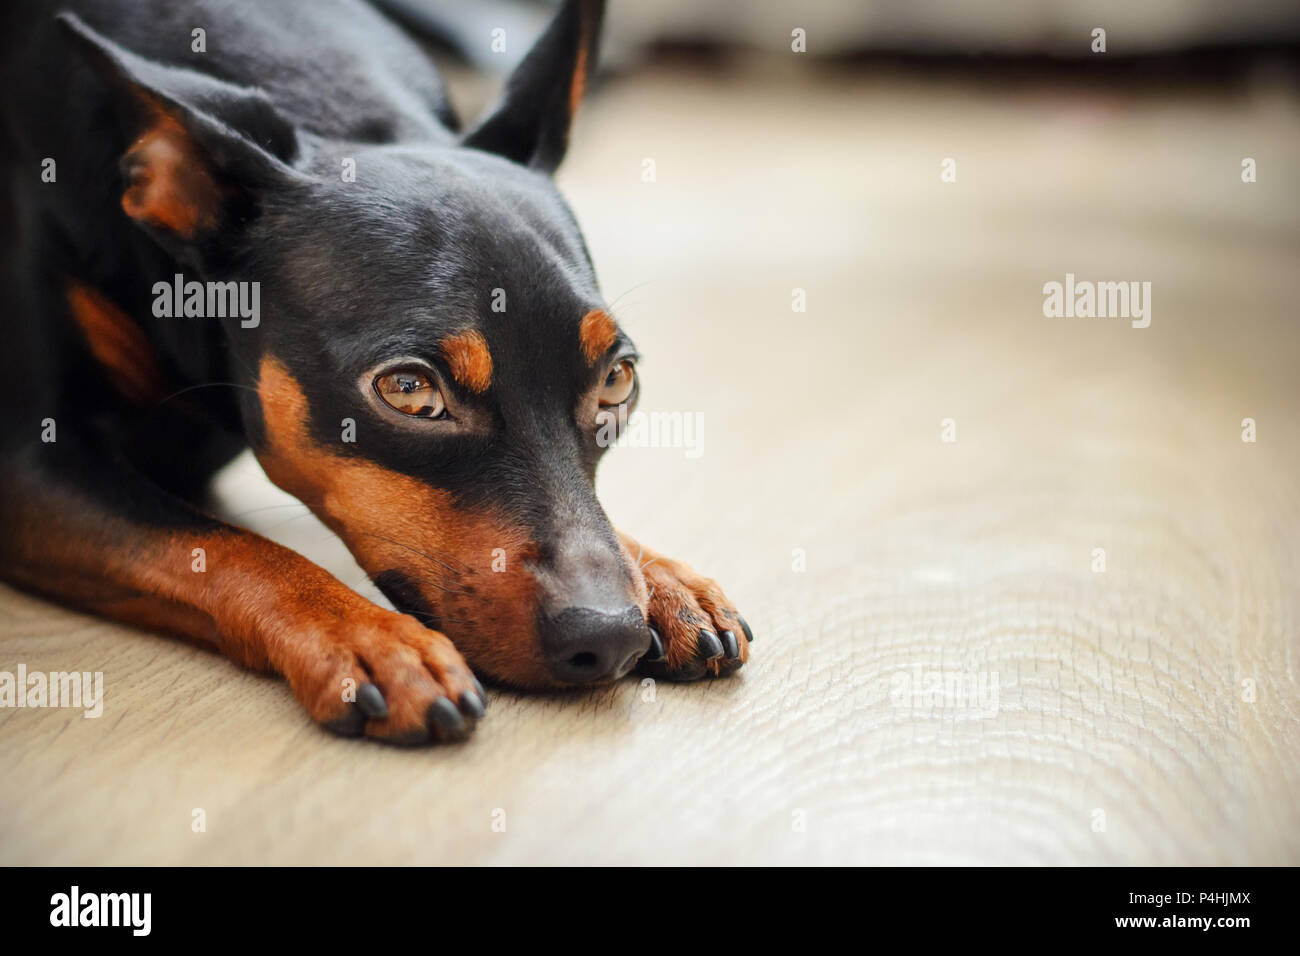 Dog dwarf pincher lies on the floor and looks sad eyes - Stock Image